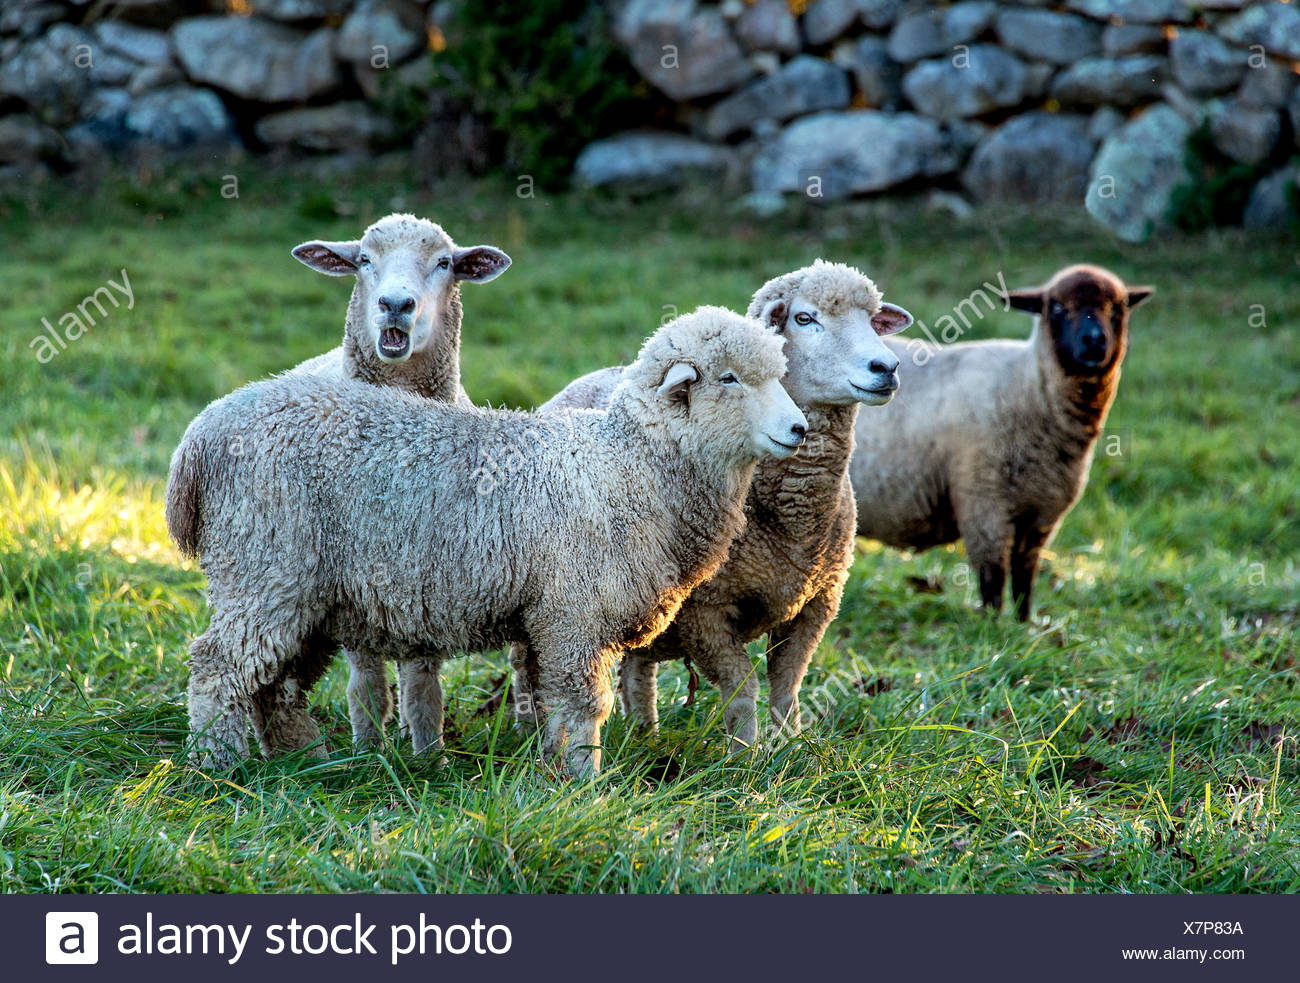 Sheep in a pasture, Martha's Vineyard, Massachusetts, USA - Stock Image